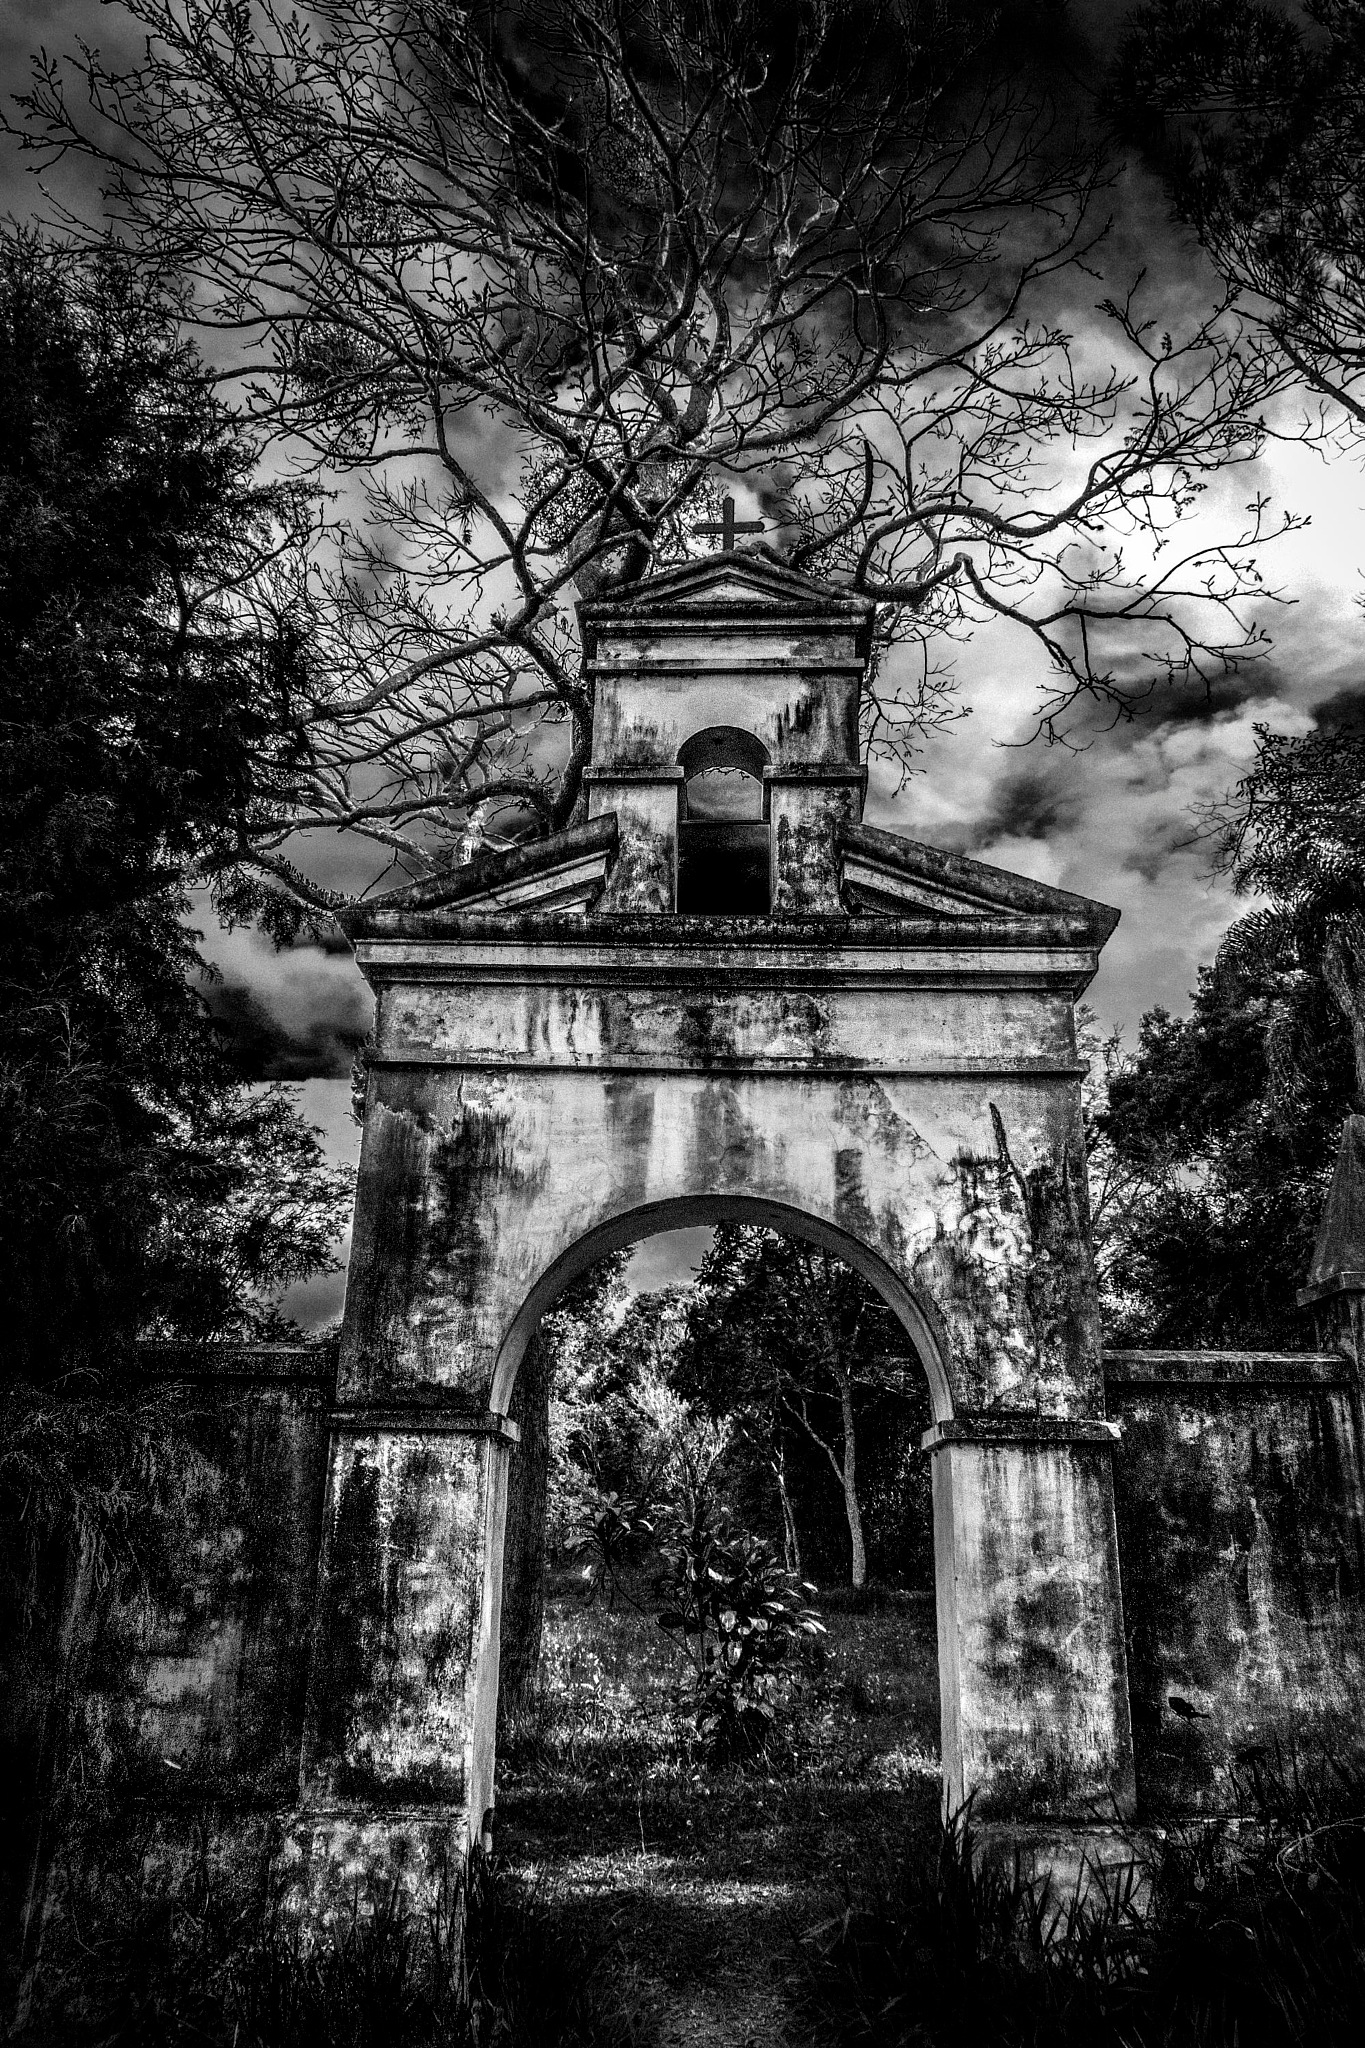 Ruins of church by sergiofernandes6767